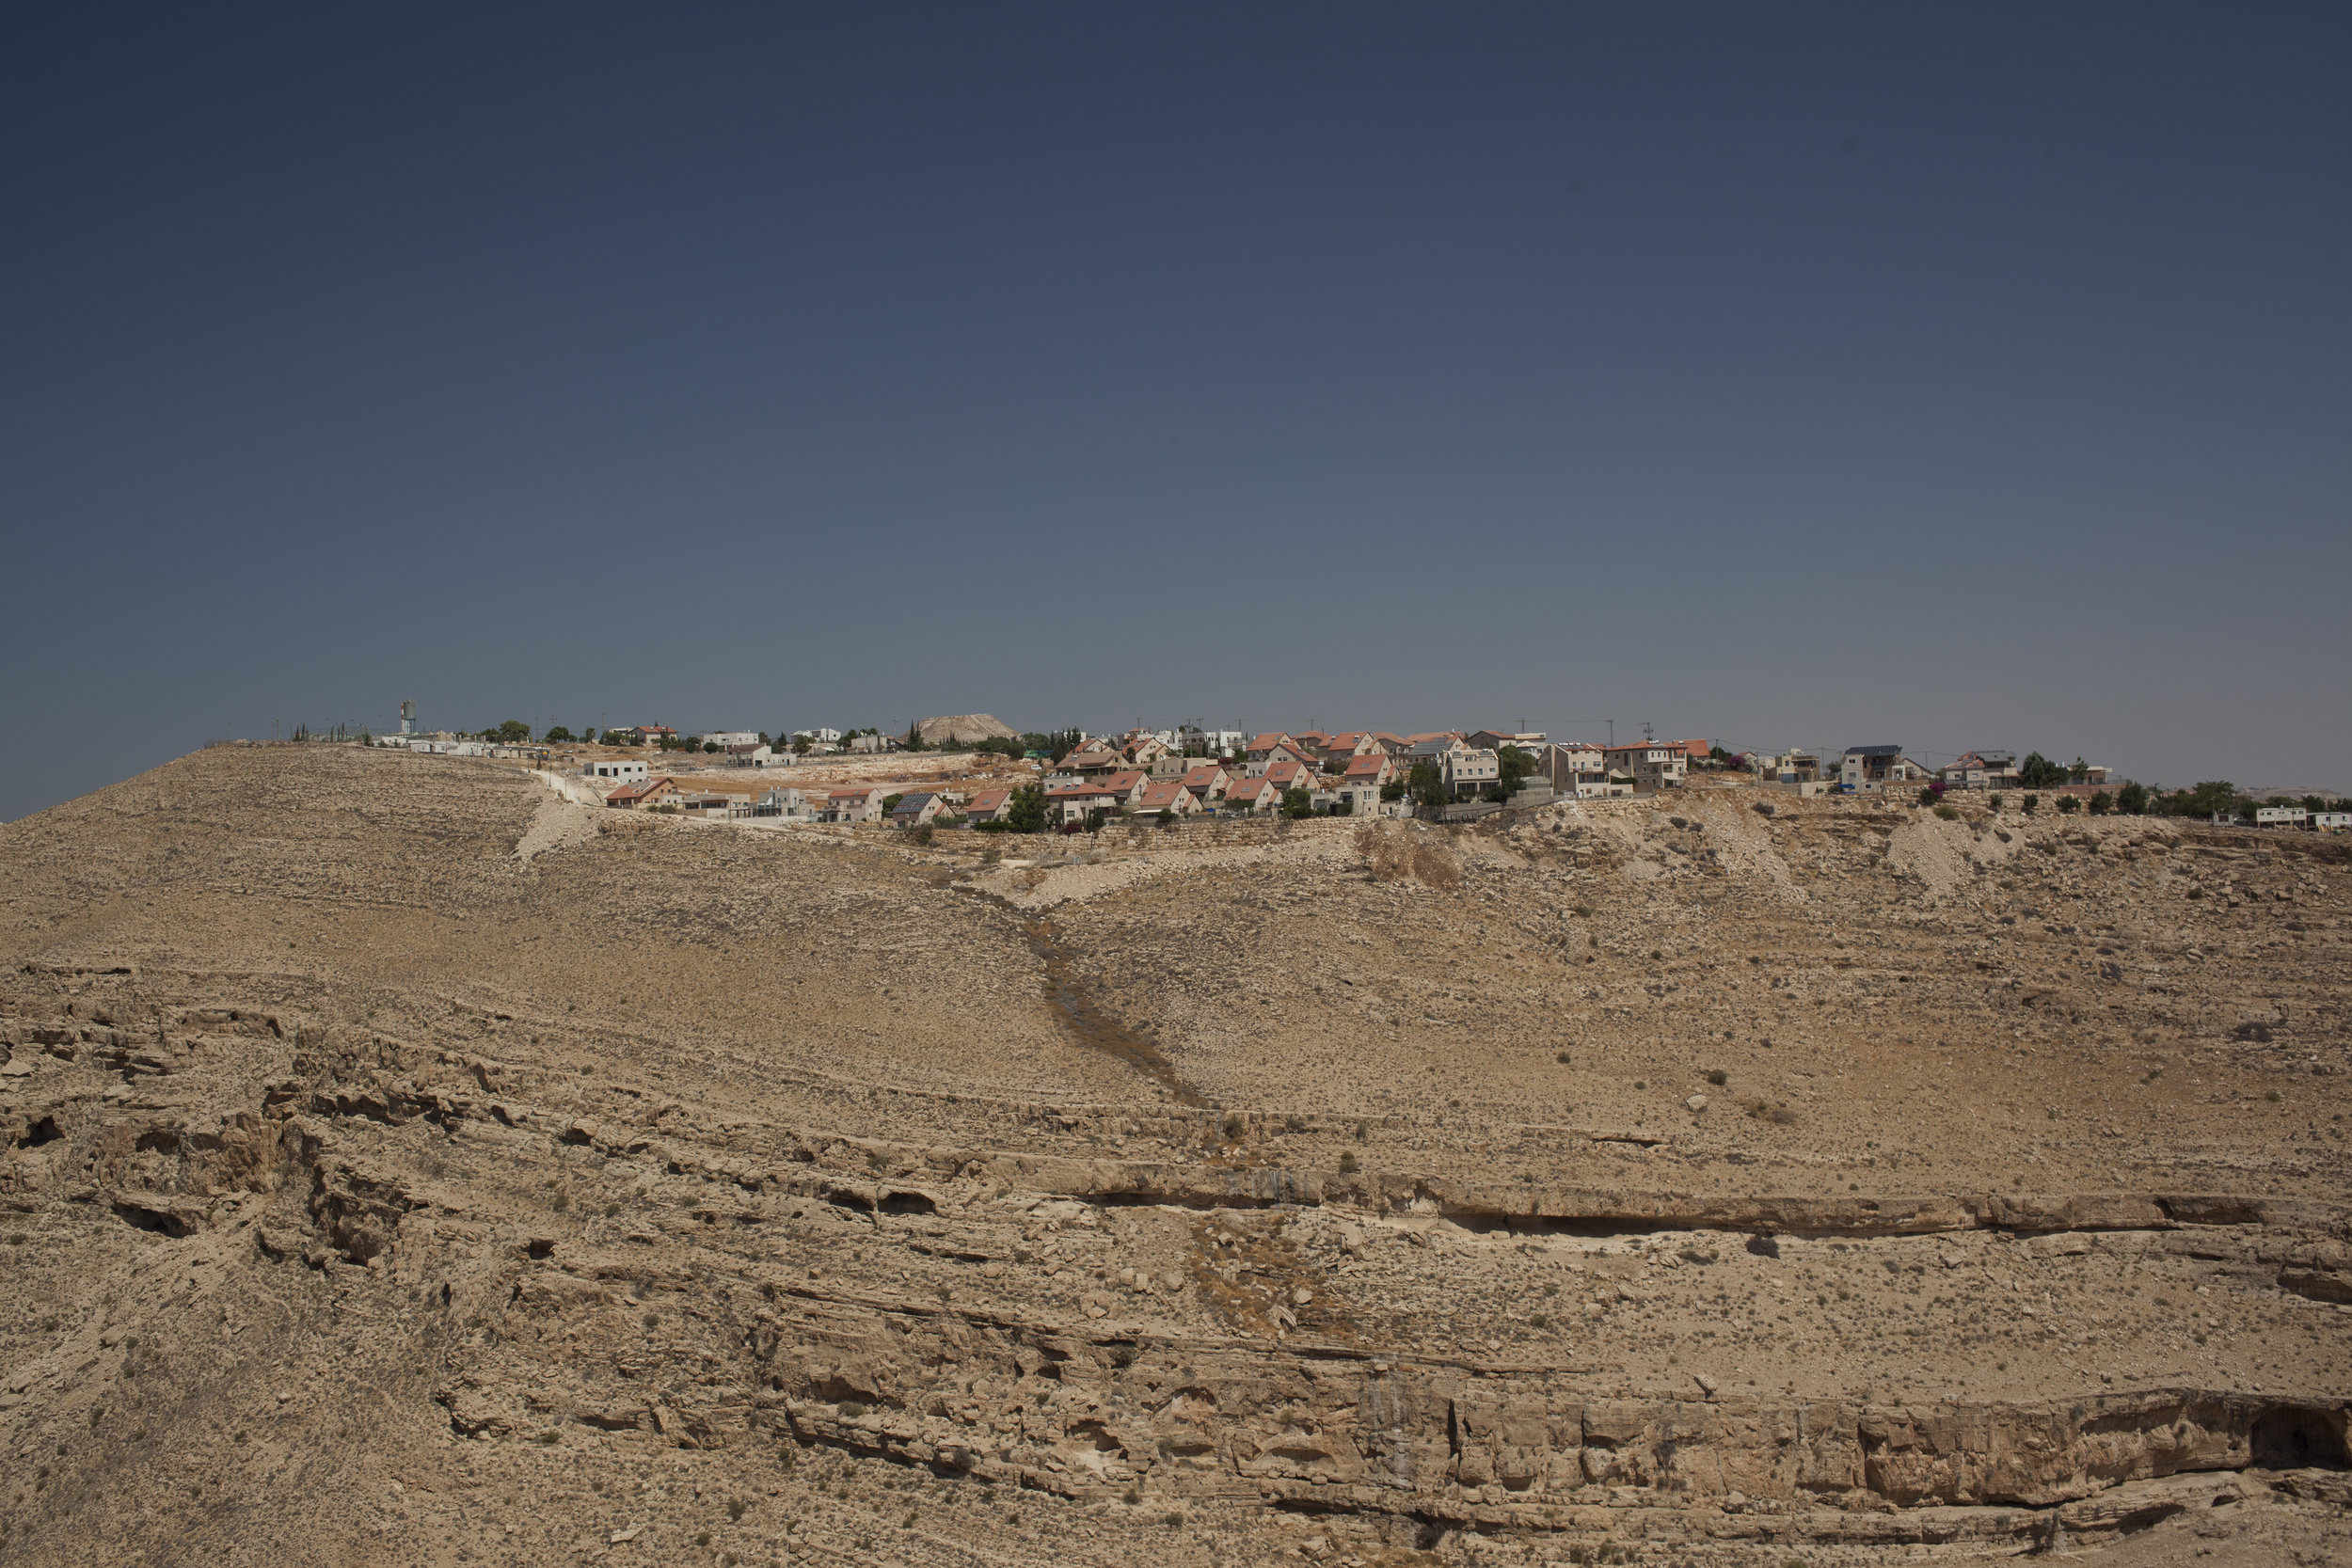 Tekoa (Dalet) - is the community settlement 16 km south from Jerusalem. The project exposes the problematic issue in Israel society.